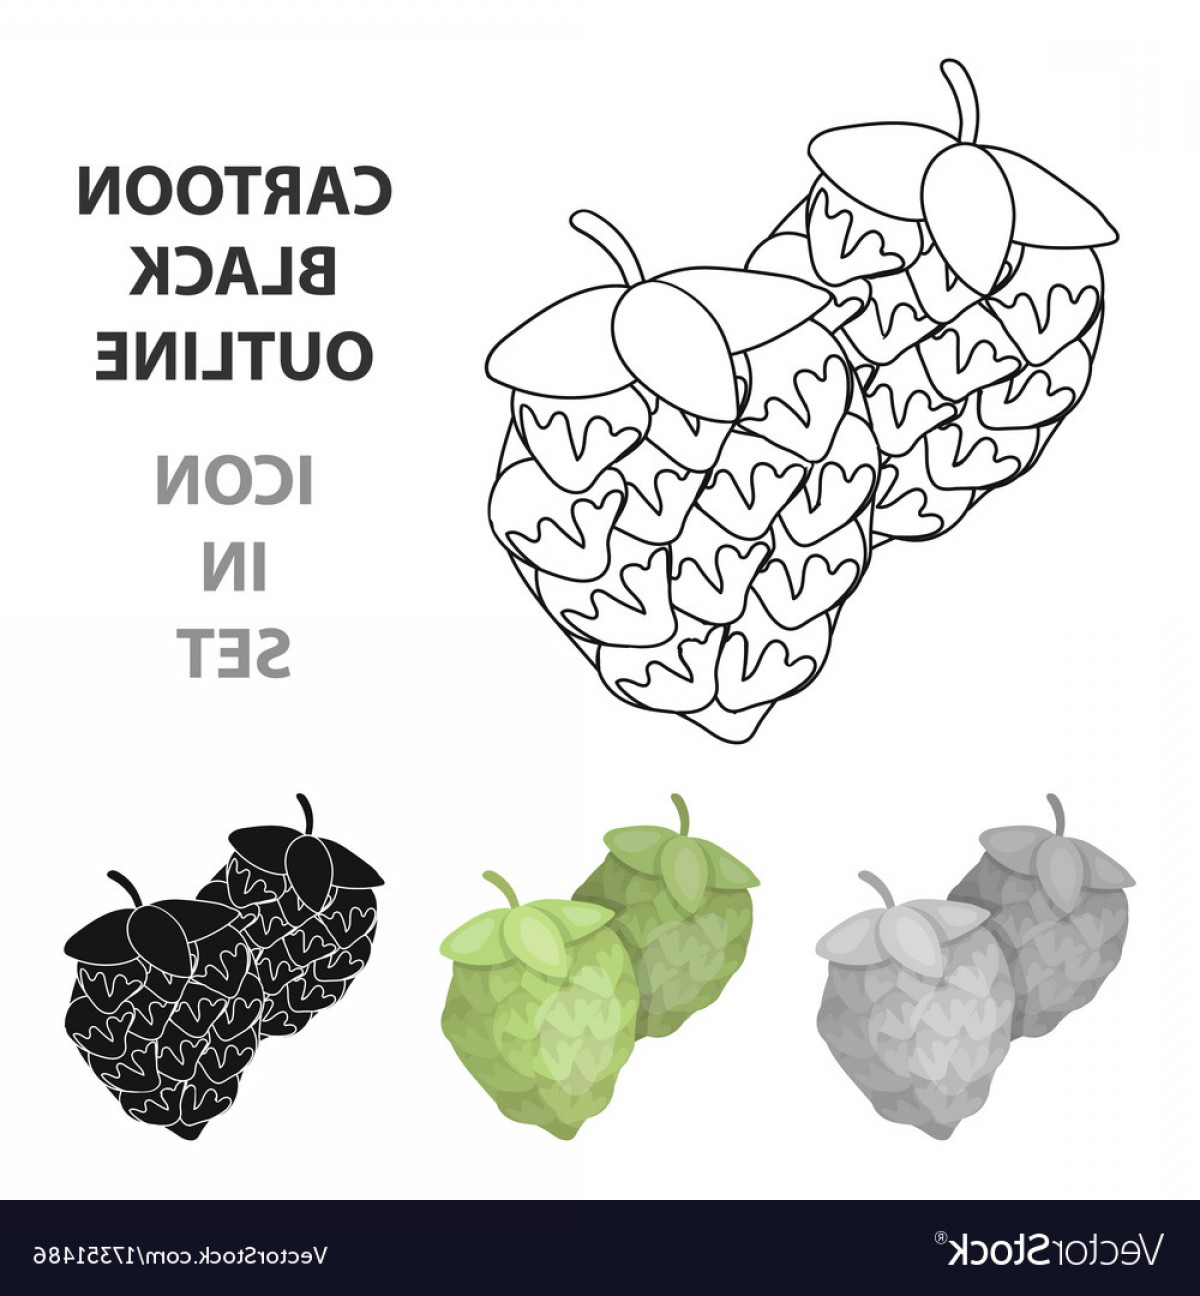 Beer Hops Vector: Green Hops Plant For Brewing Beer The Main Vector